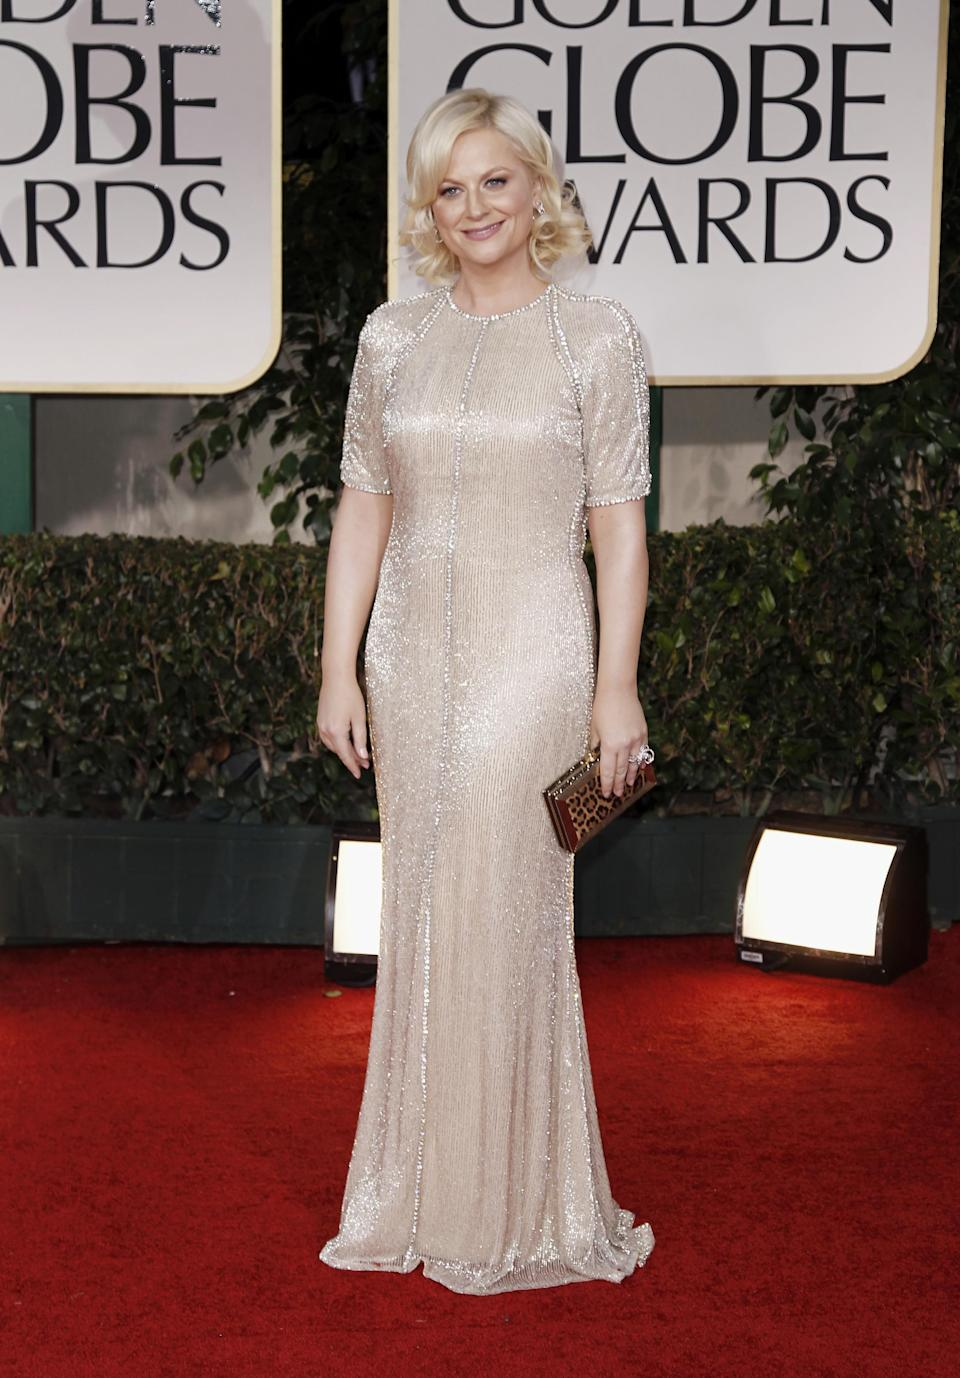 Amy Poehler arrives at the 69th Annual Golden Globe Awards Sunday, Jan. 15, 2012, in Los Angeles. (AP Photo/Matt Sayles)